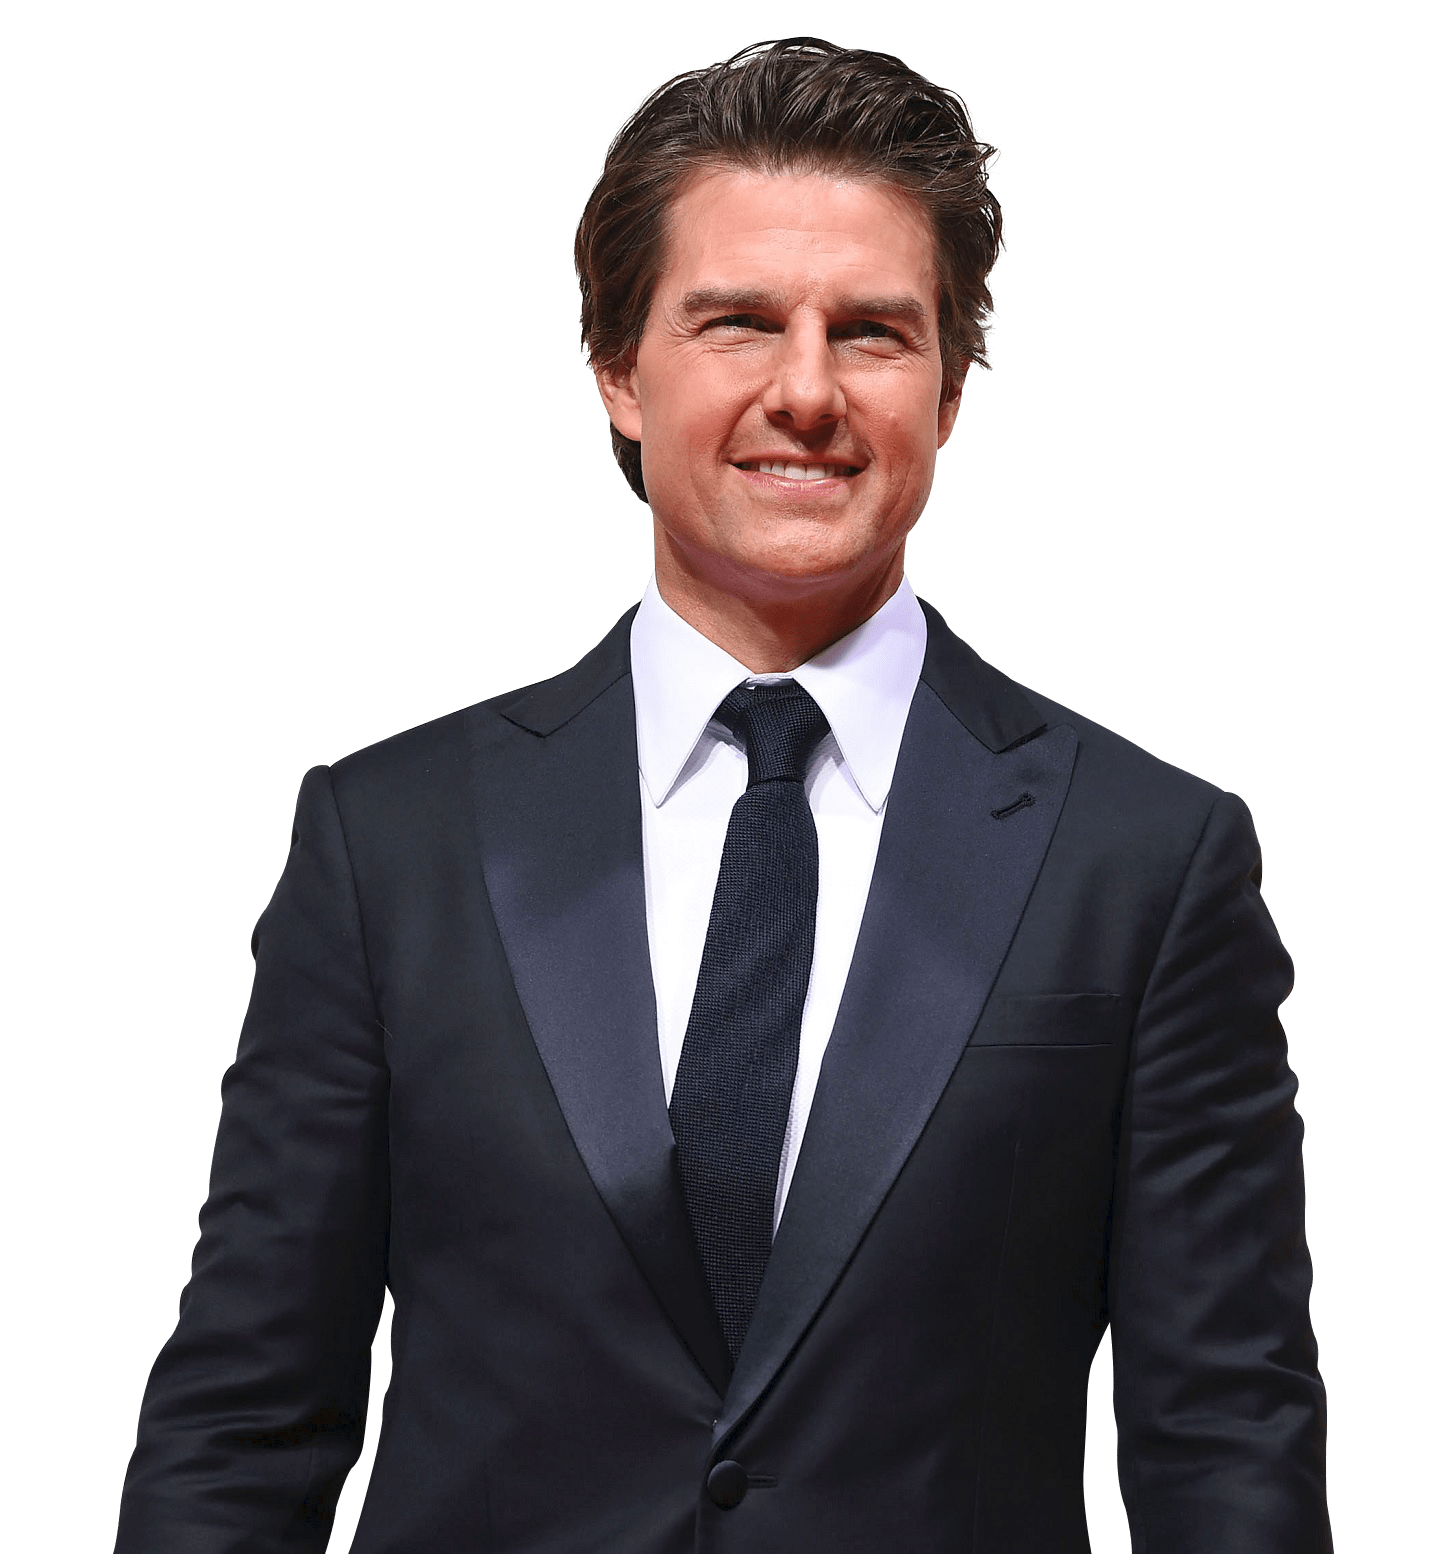 Tom Cruise Suit